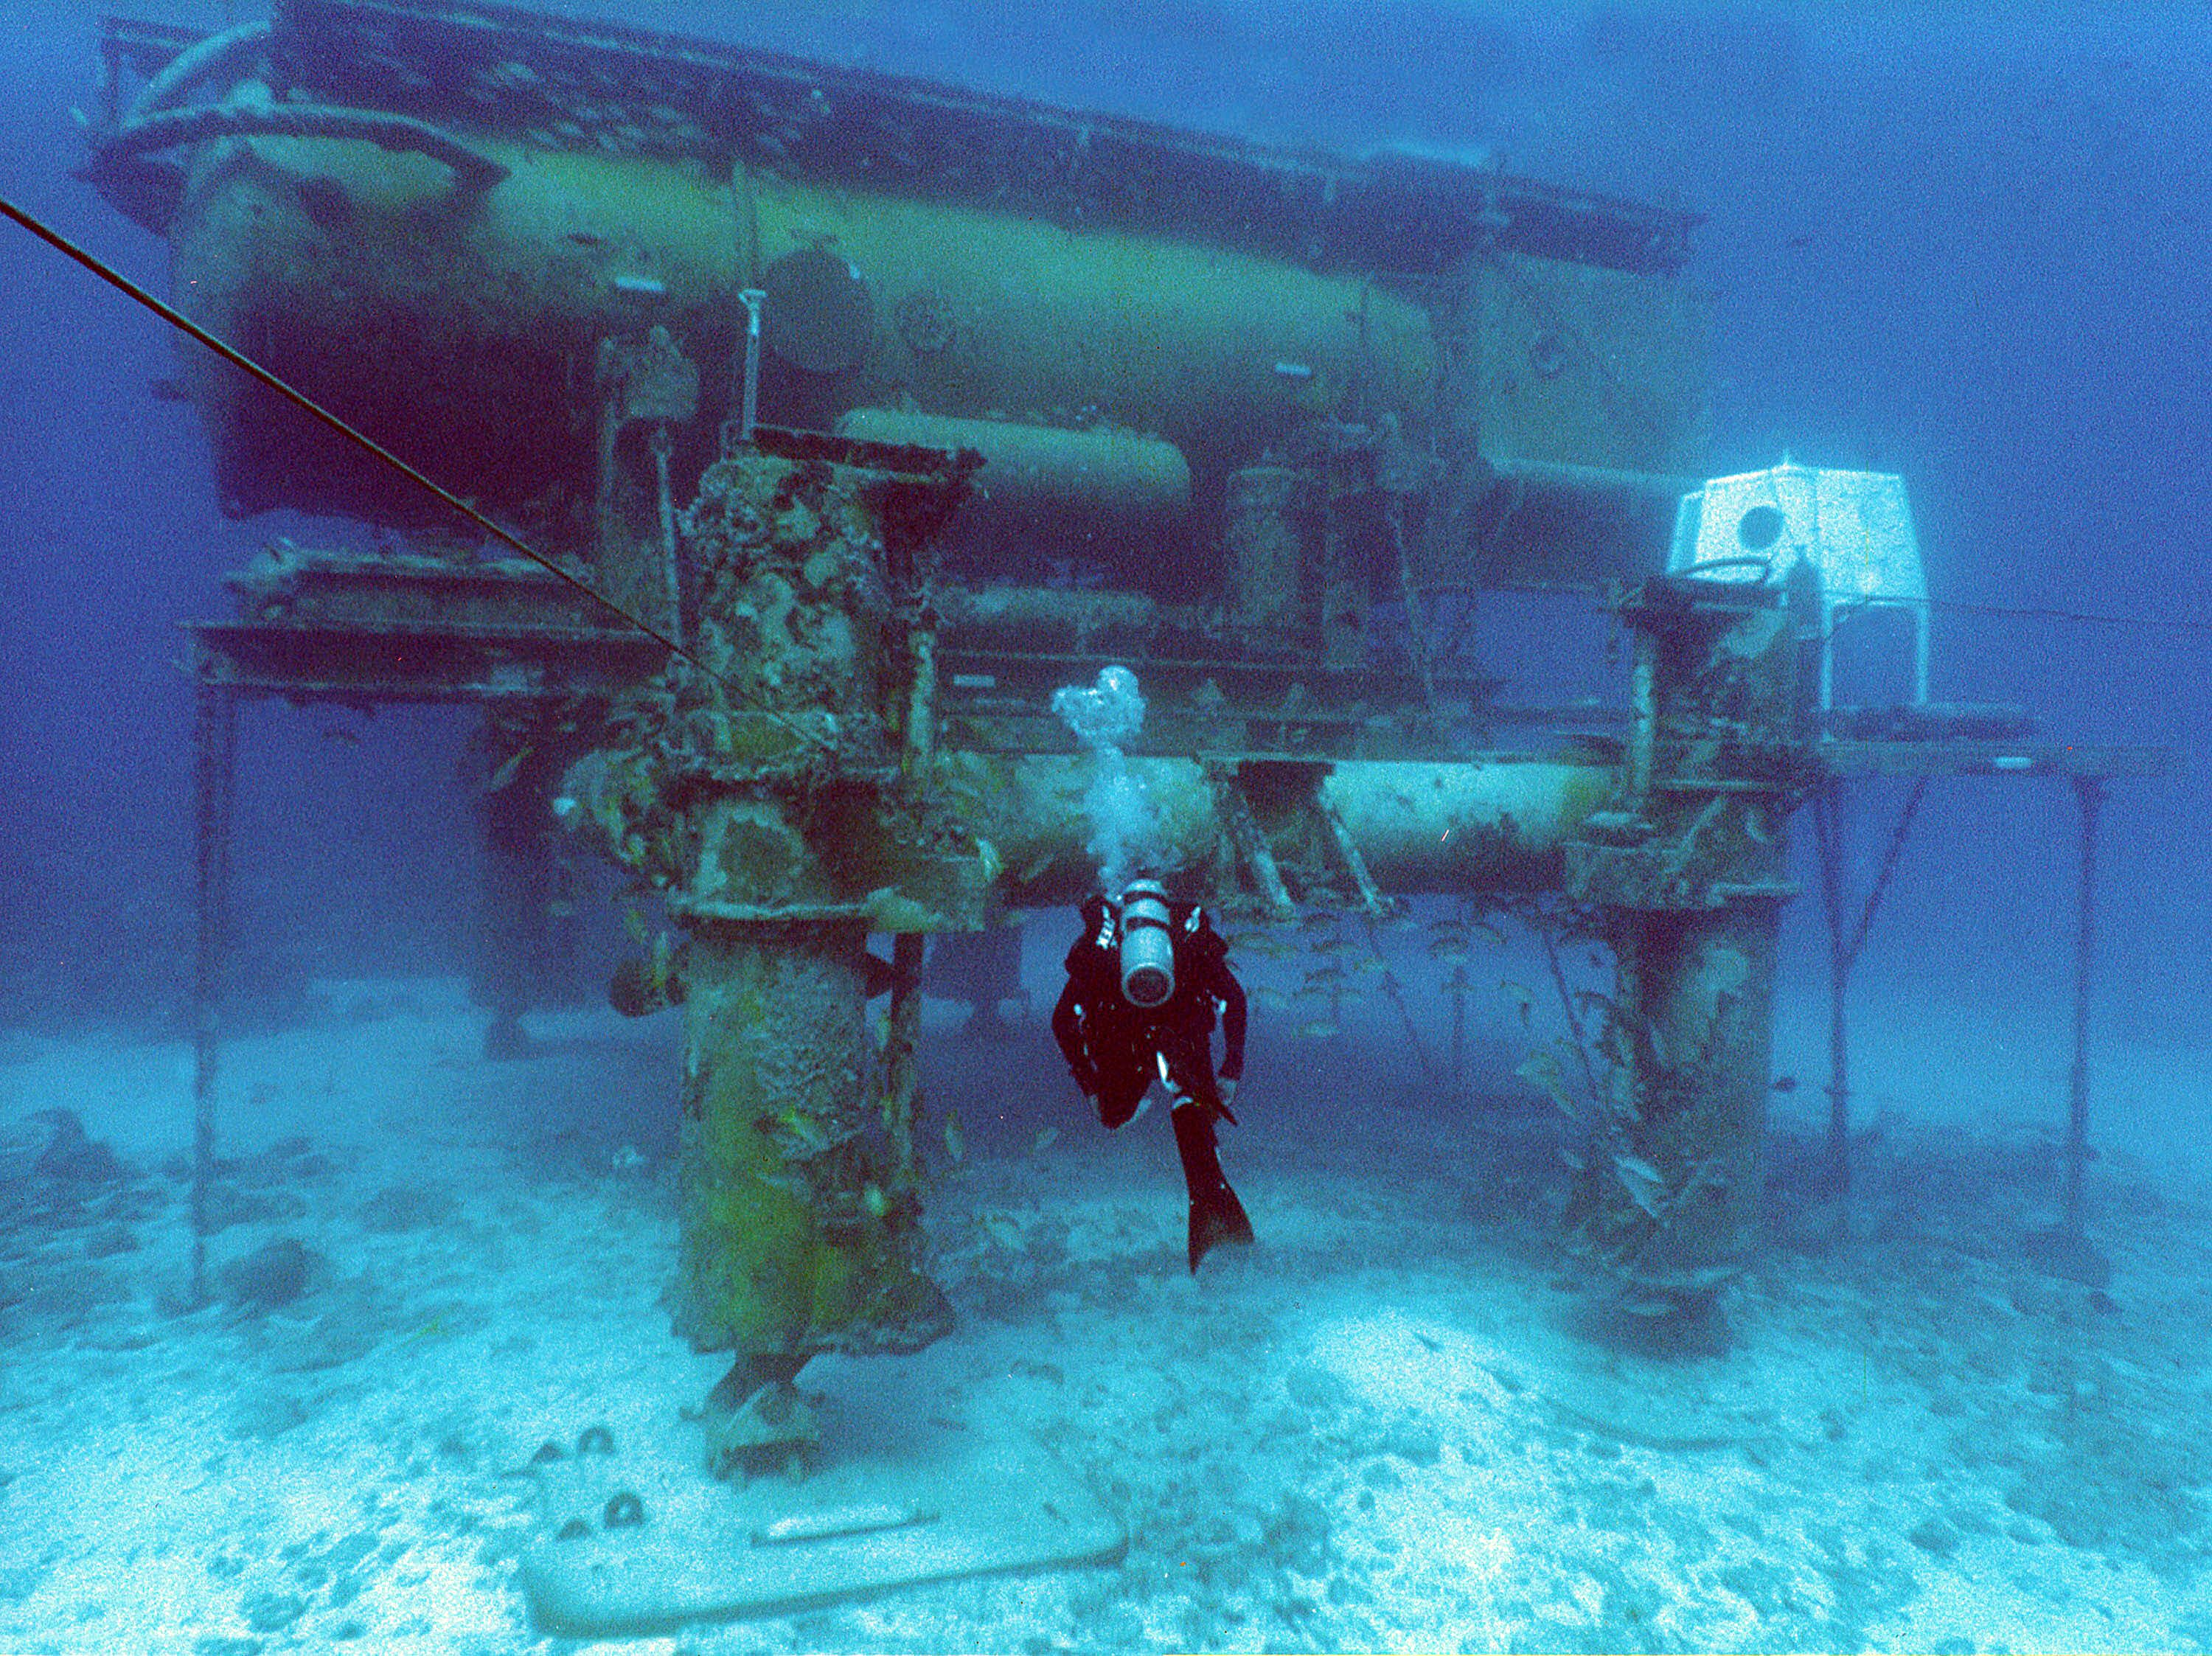 The Aquarius Station Is An Underwater Research Facility It Is A Unique Studying Lab That Is Really Up Cl Underwater National Marine Sanctuary Underwater World